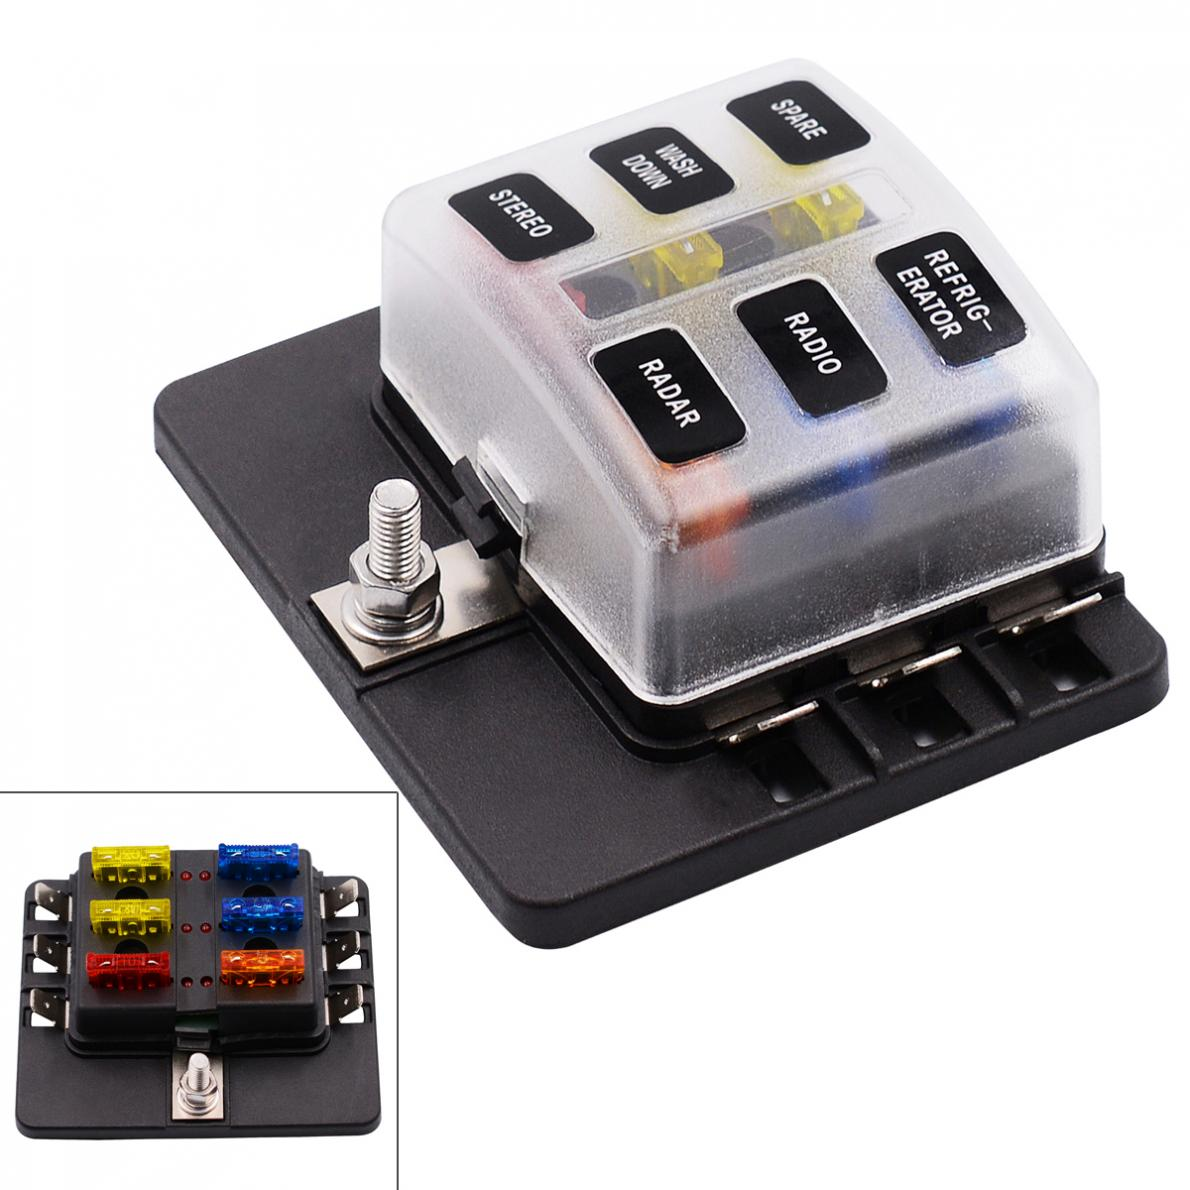 6 way 12v 24v blade fuse box holder with led warning light kit for car boat marine trike [ 1190 x 1190 Pixel ]